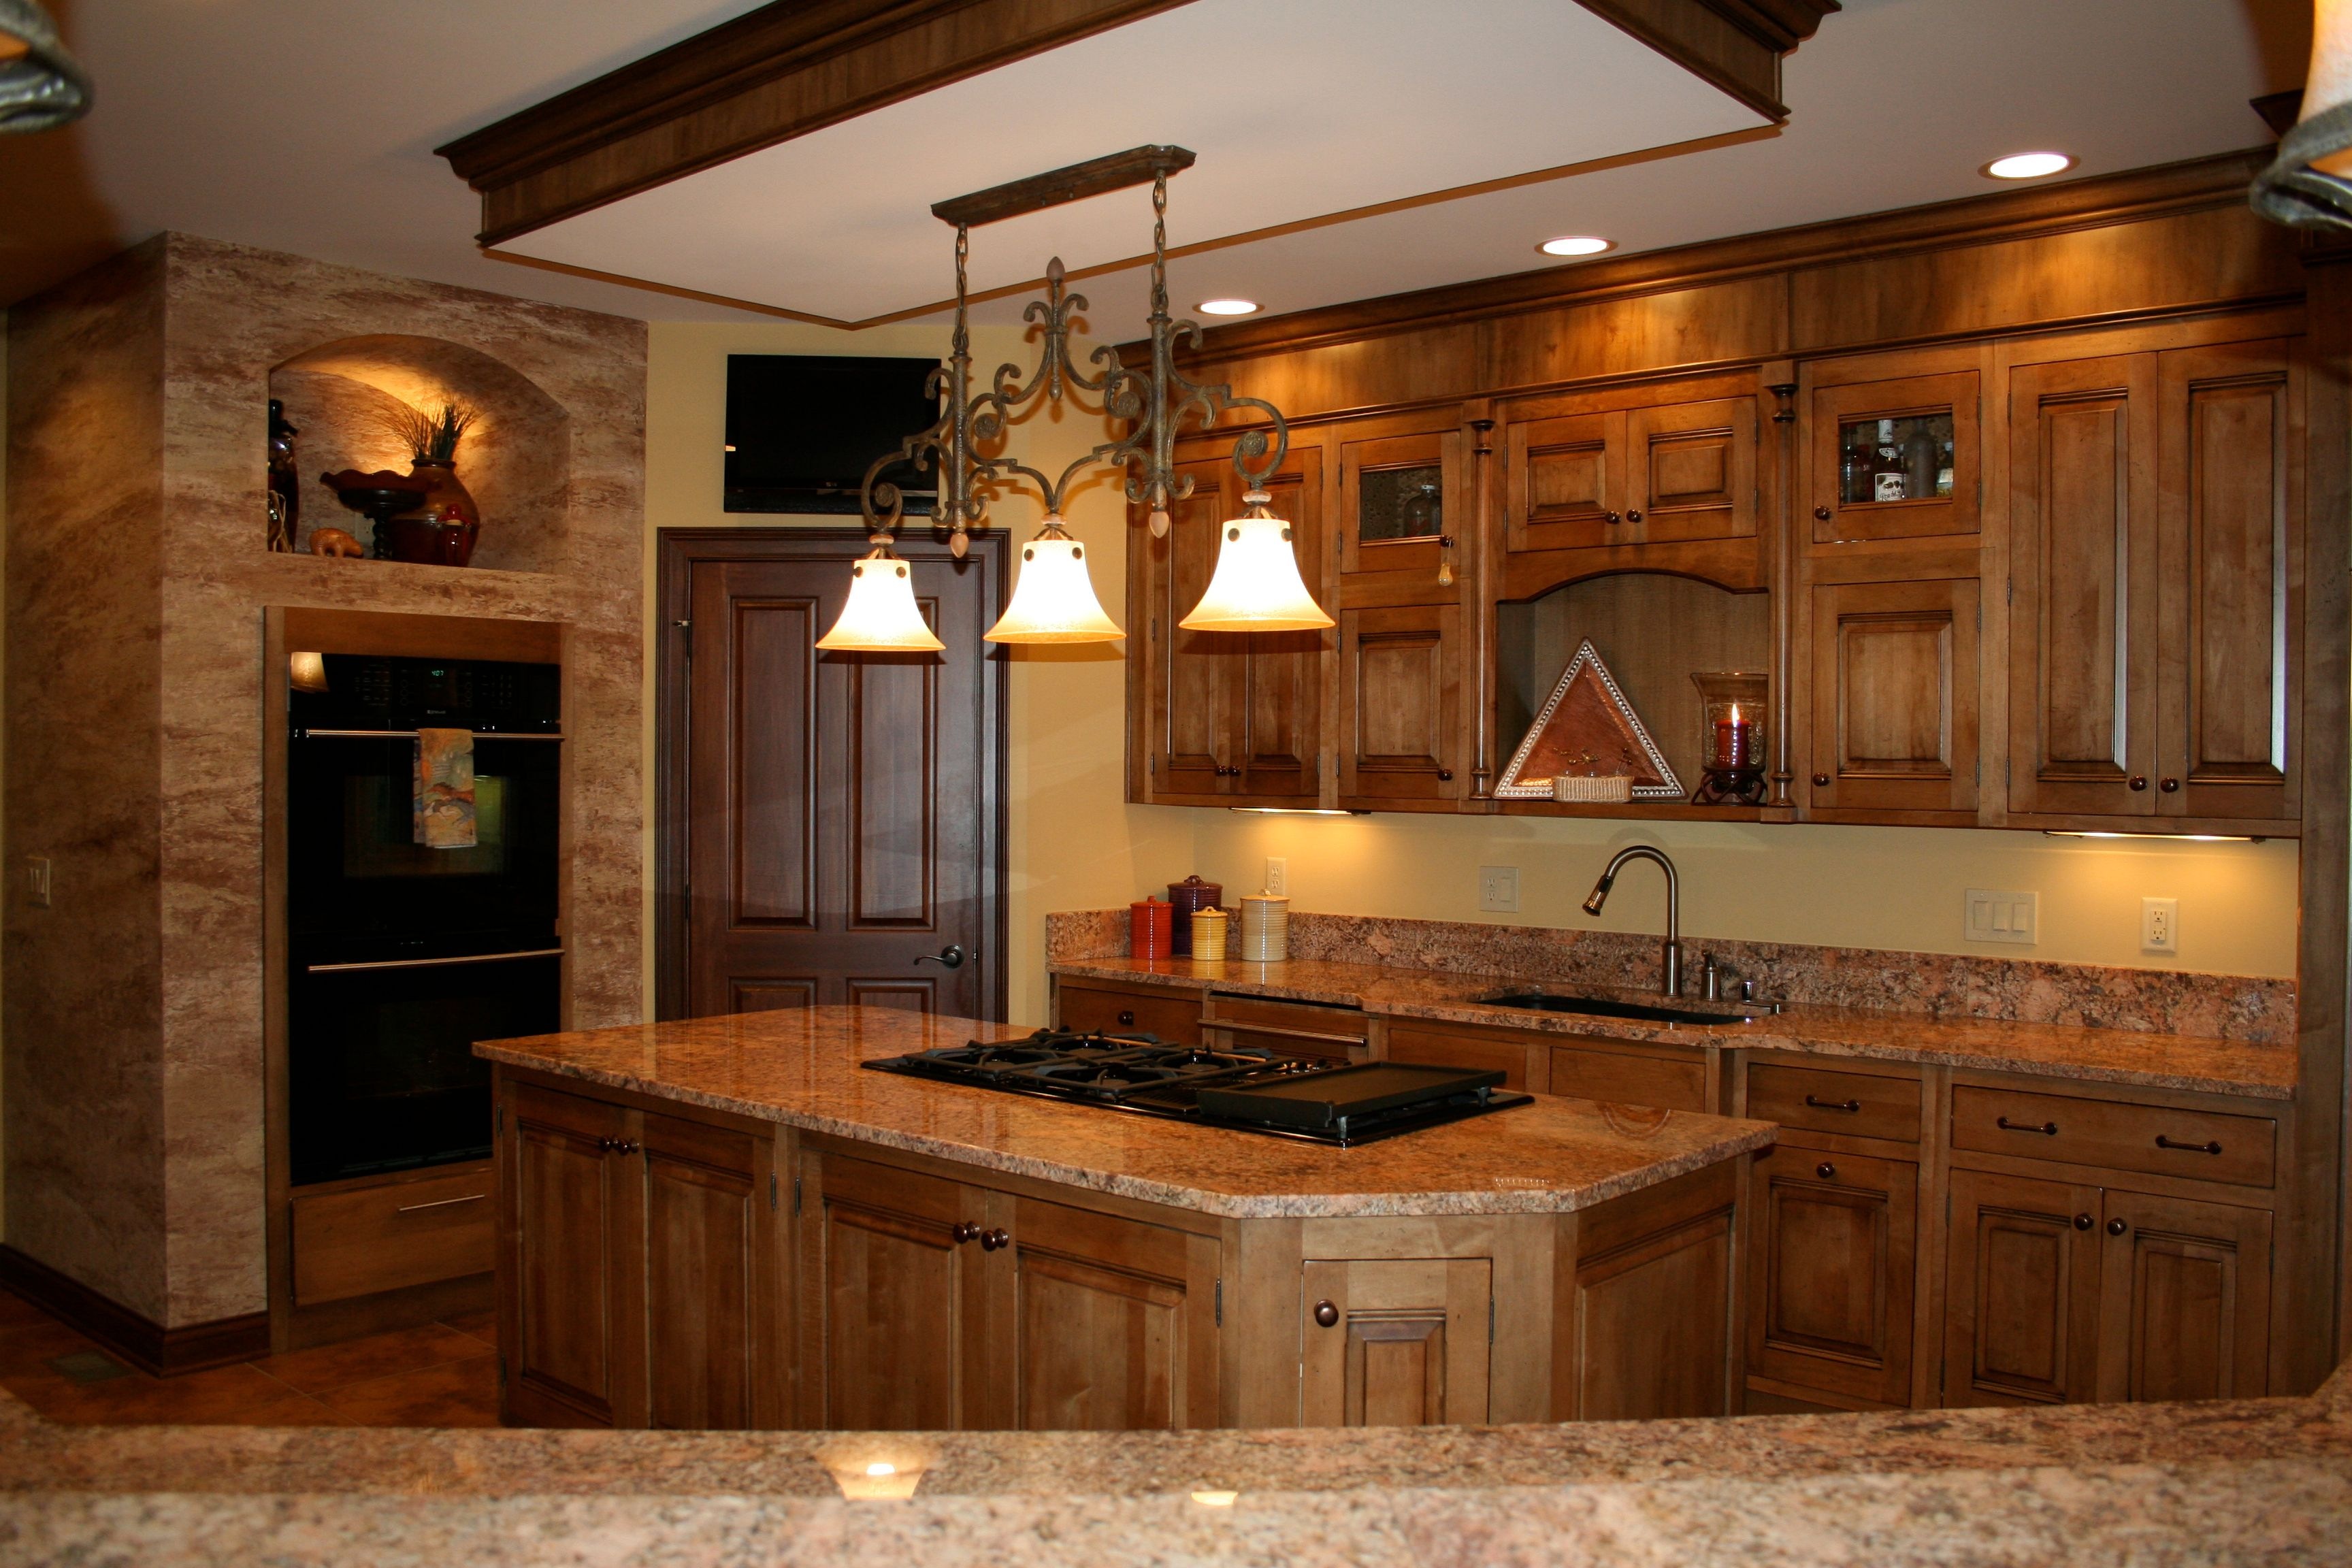 Kitchen featured in the Scottsdale By Sutter Homes, Inc. in Cincinnati, KY